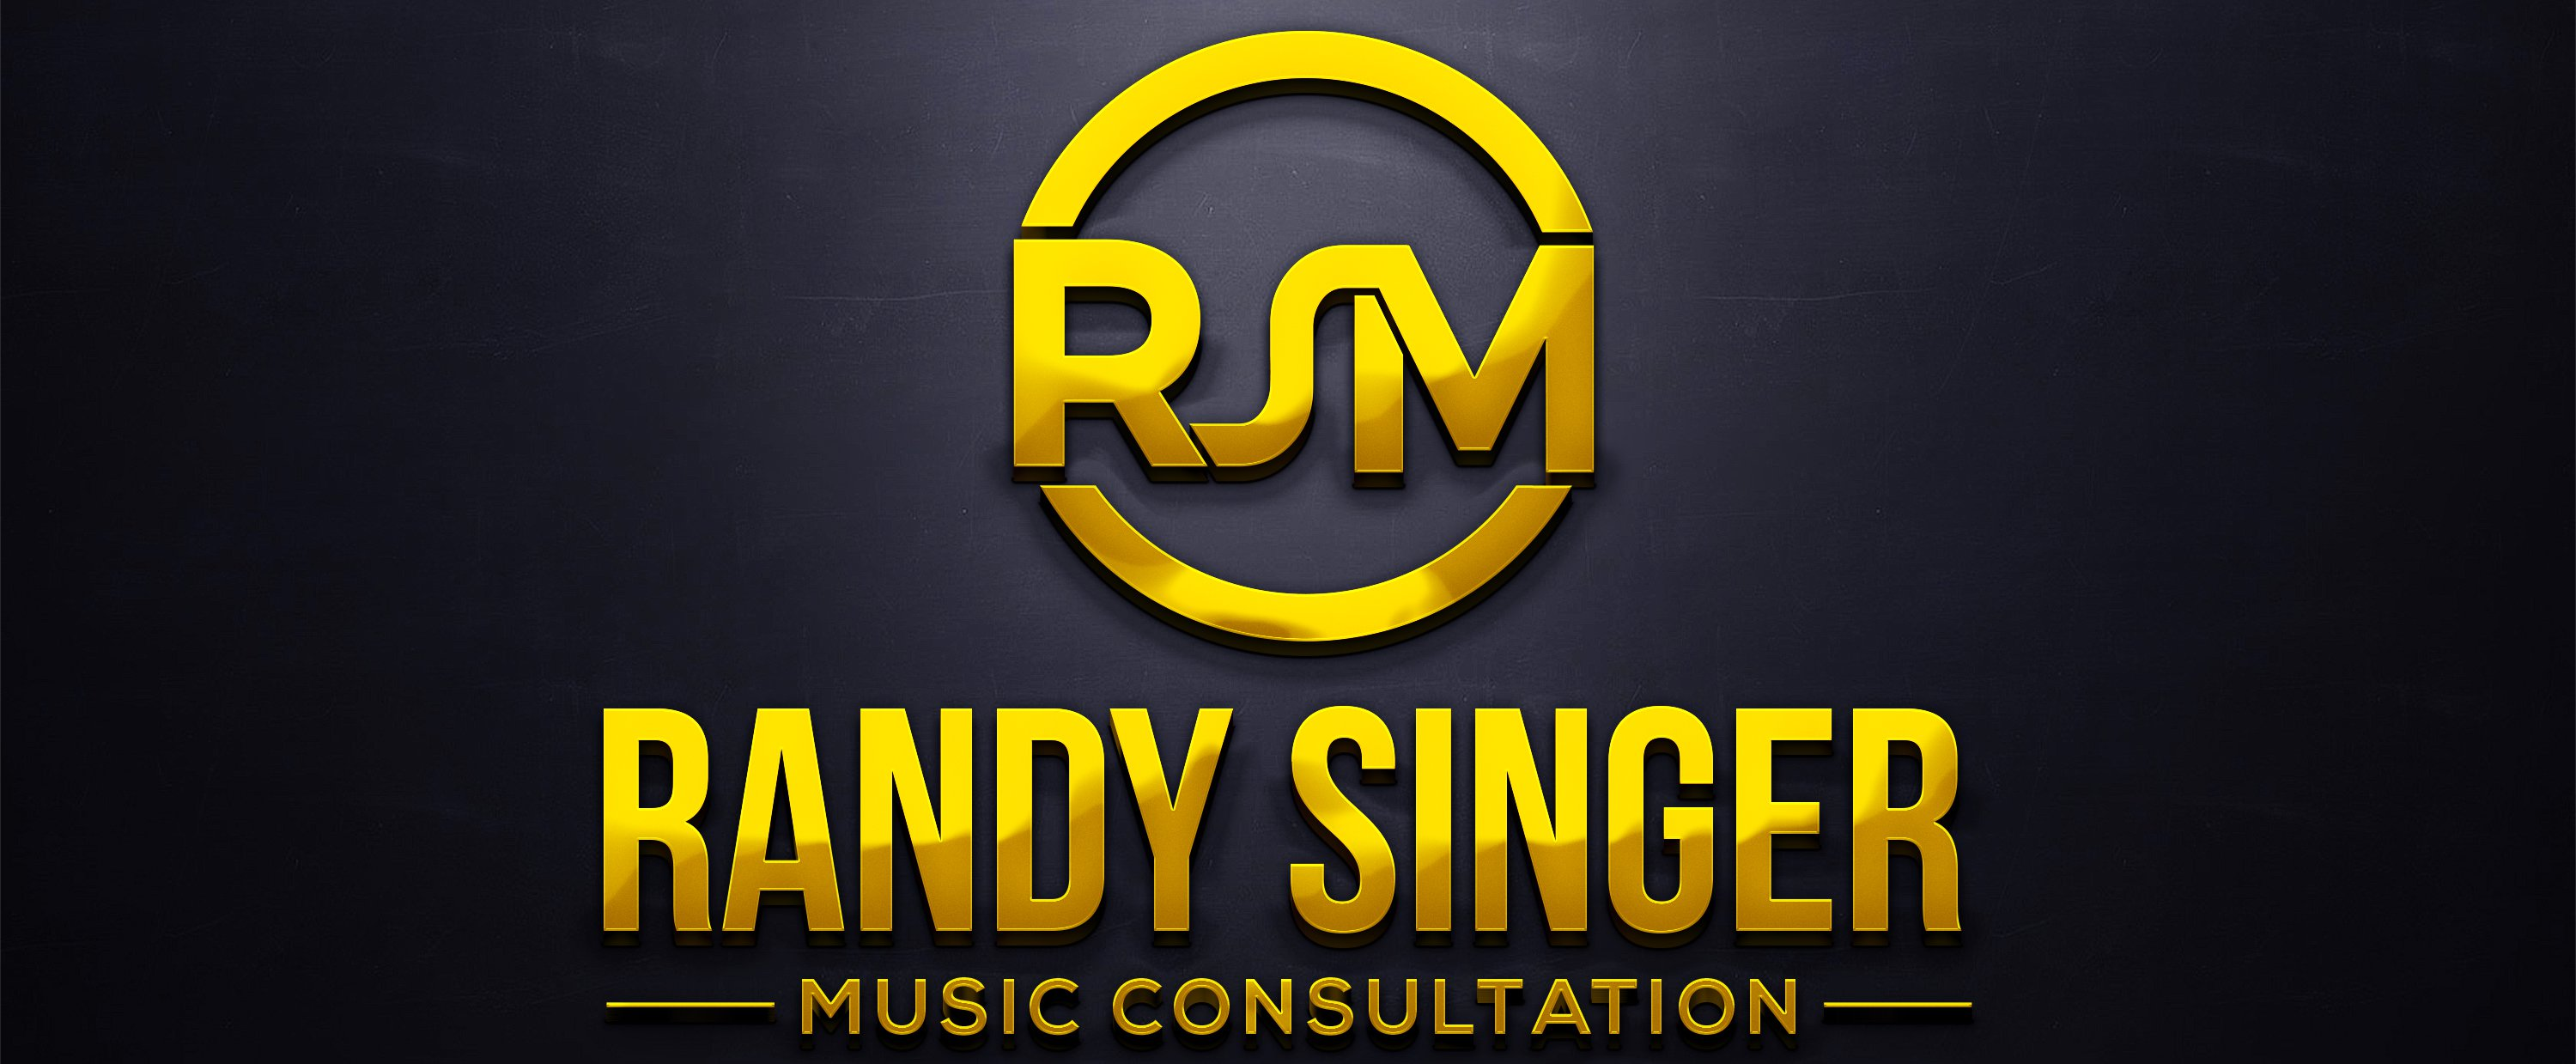 Randy Singer Music